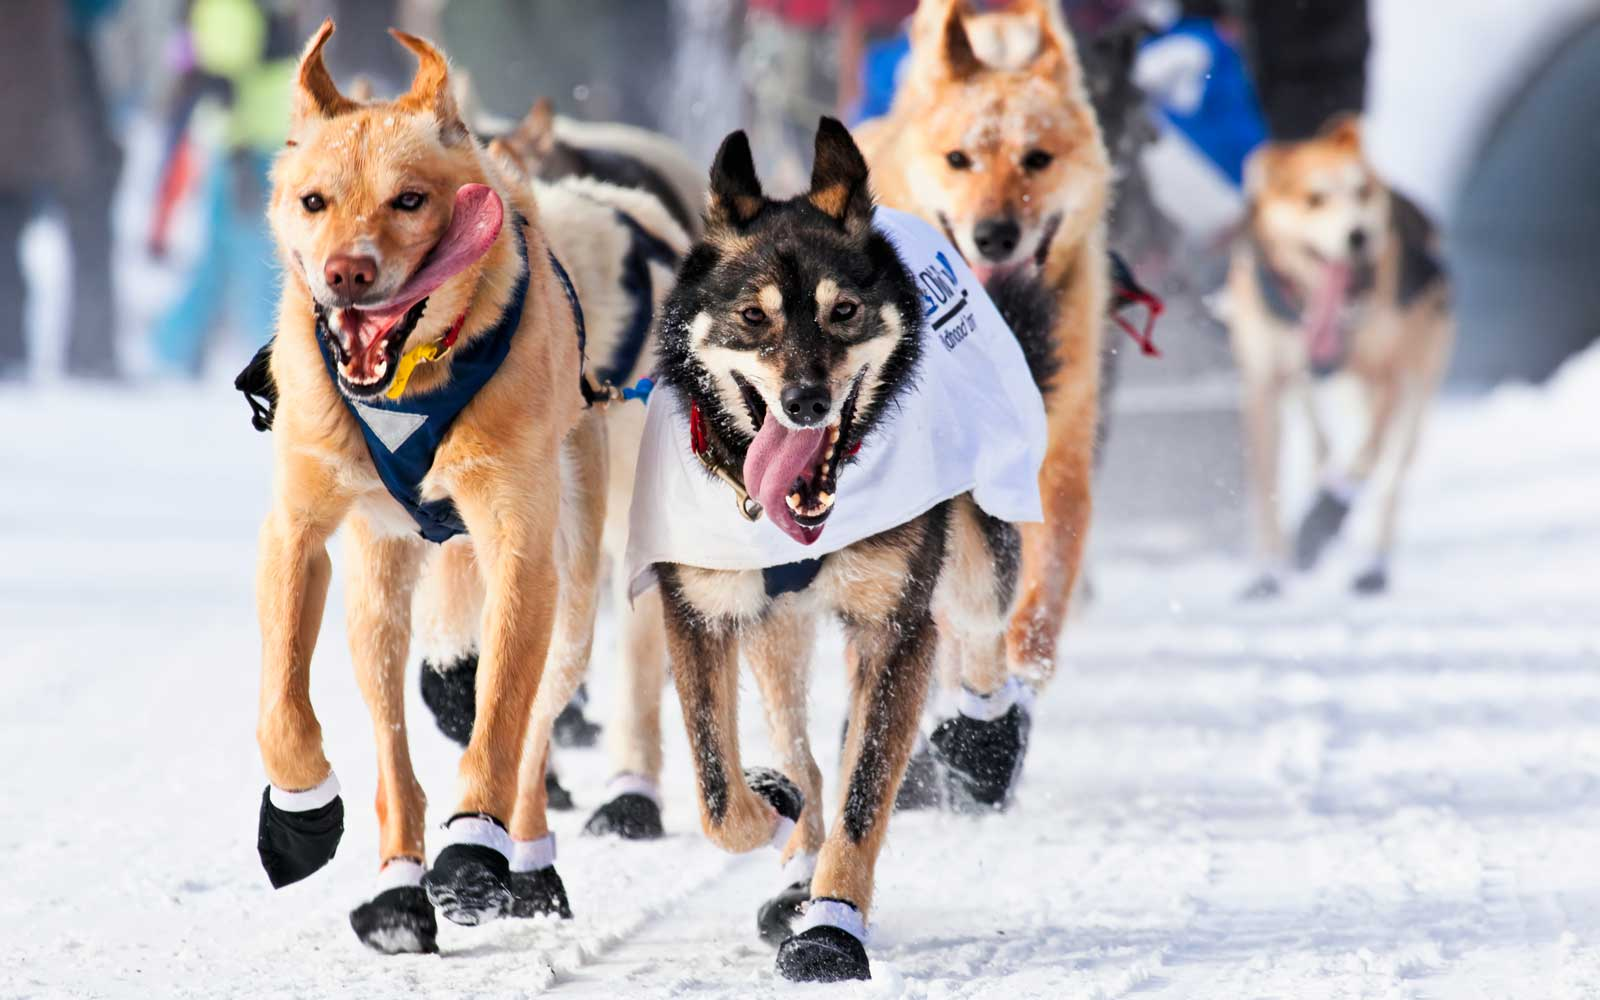 Close up of sled dogs in the chute at the 2013 Iditarod Ceremonial Start, Anchorage, Alaska.